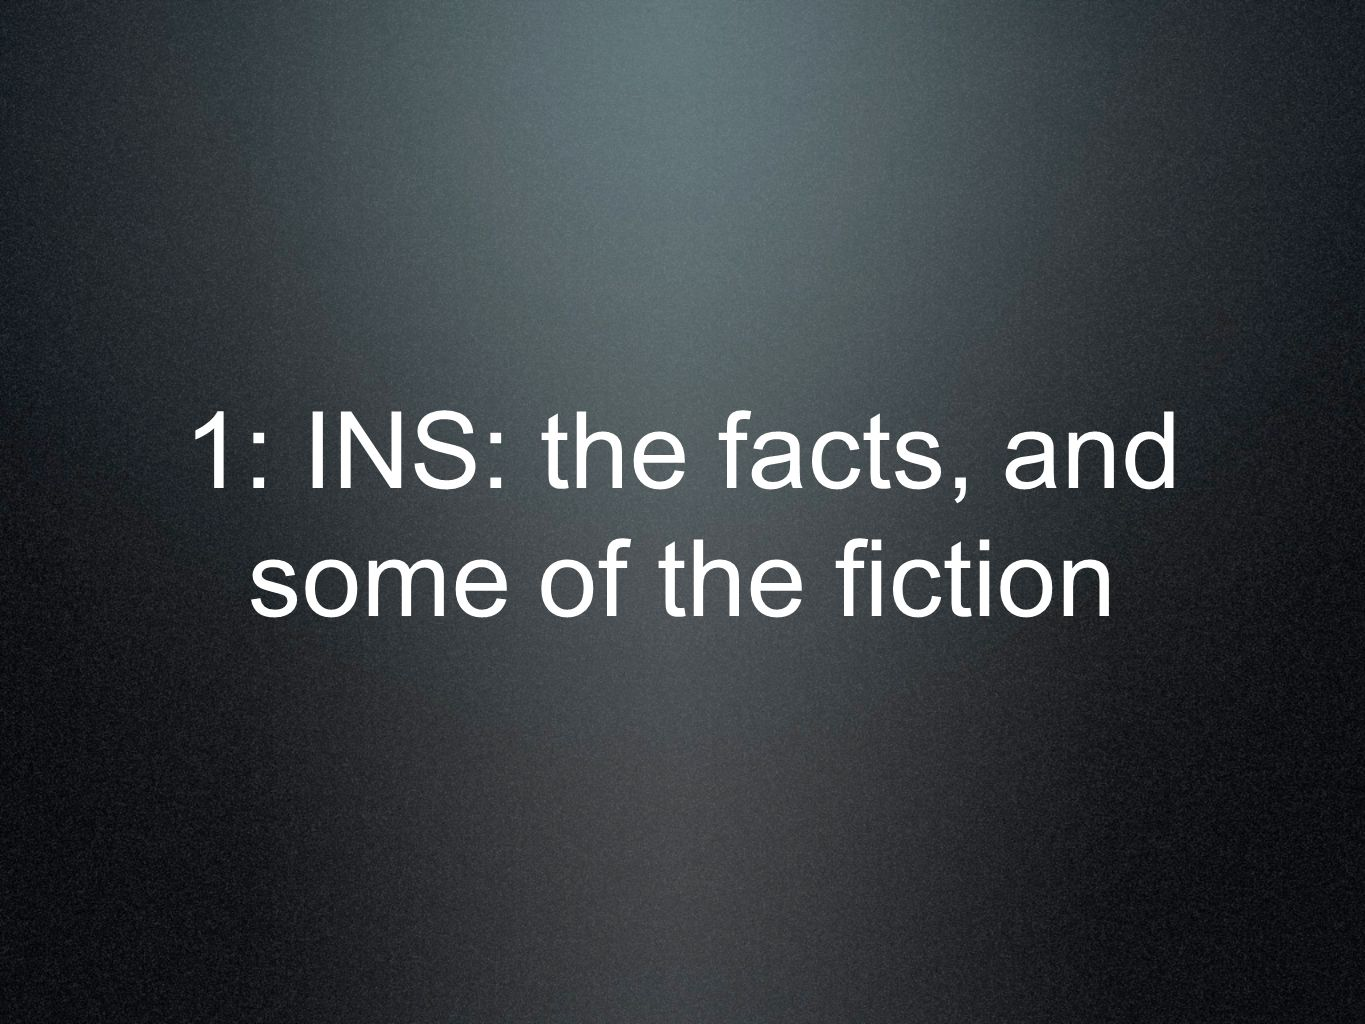 1: INS: the facts, and some of the fiction